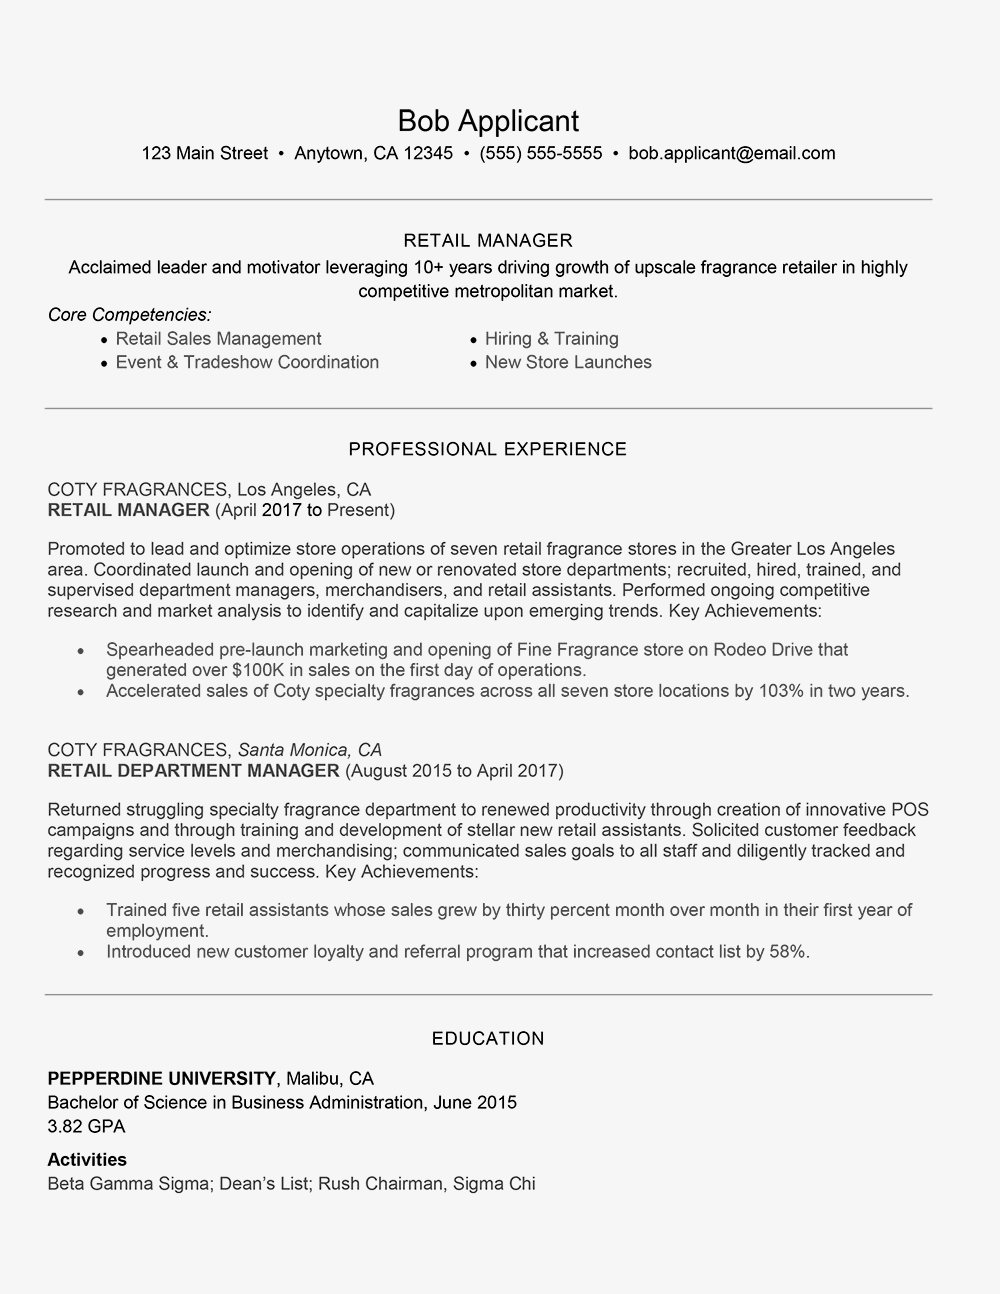 Retail Management Cover Letter and Resume Examples